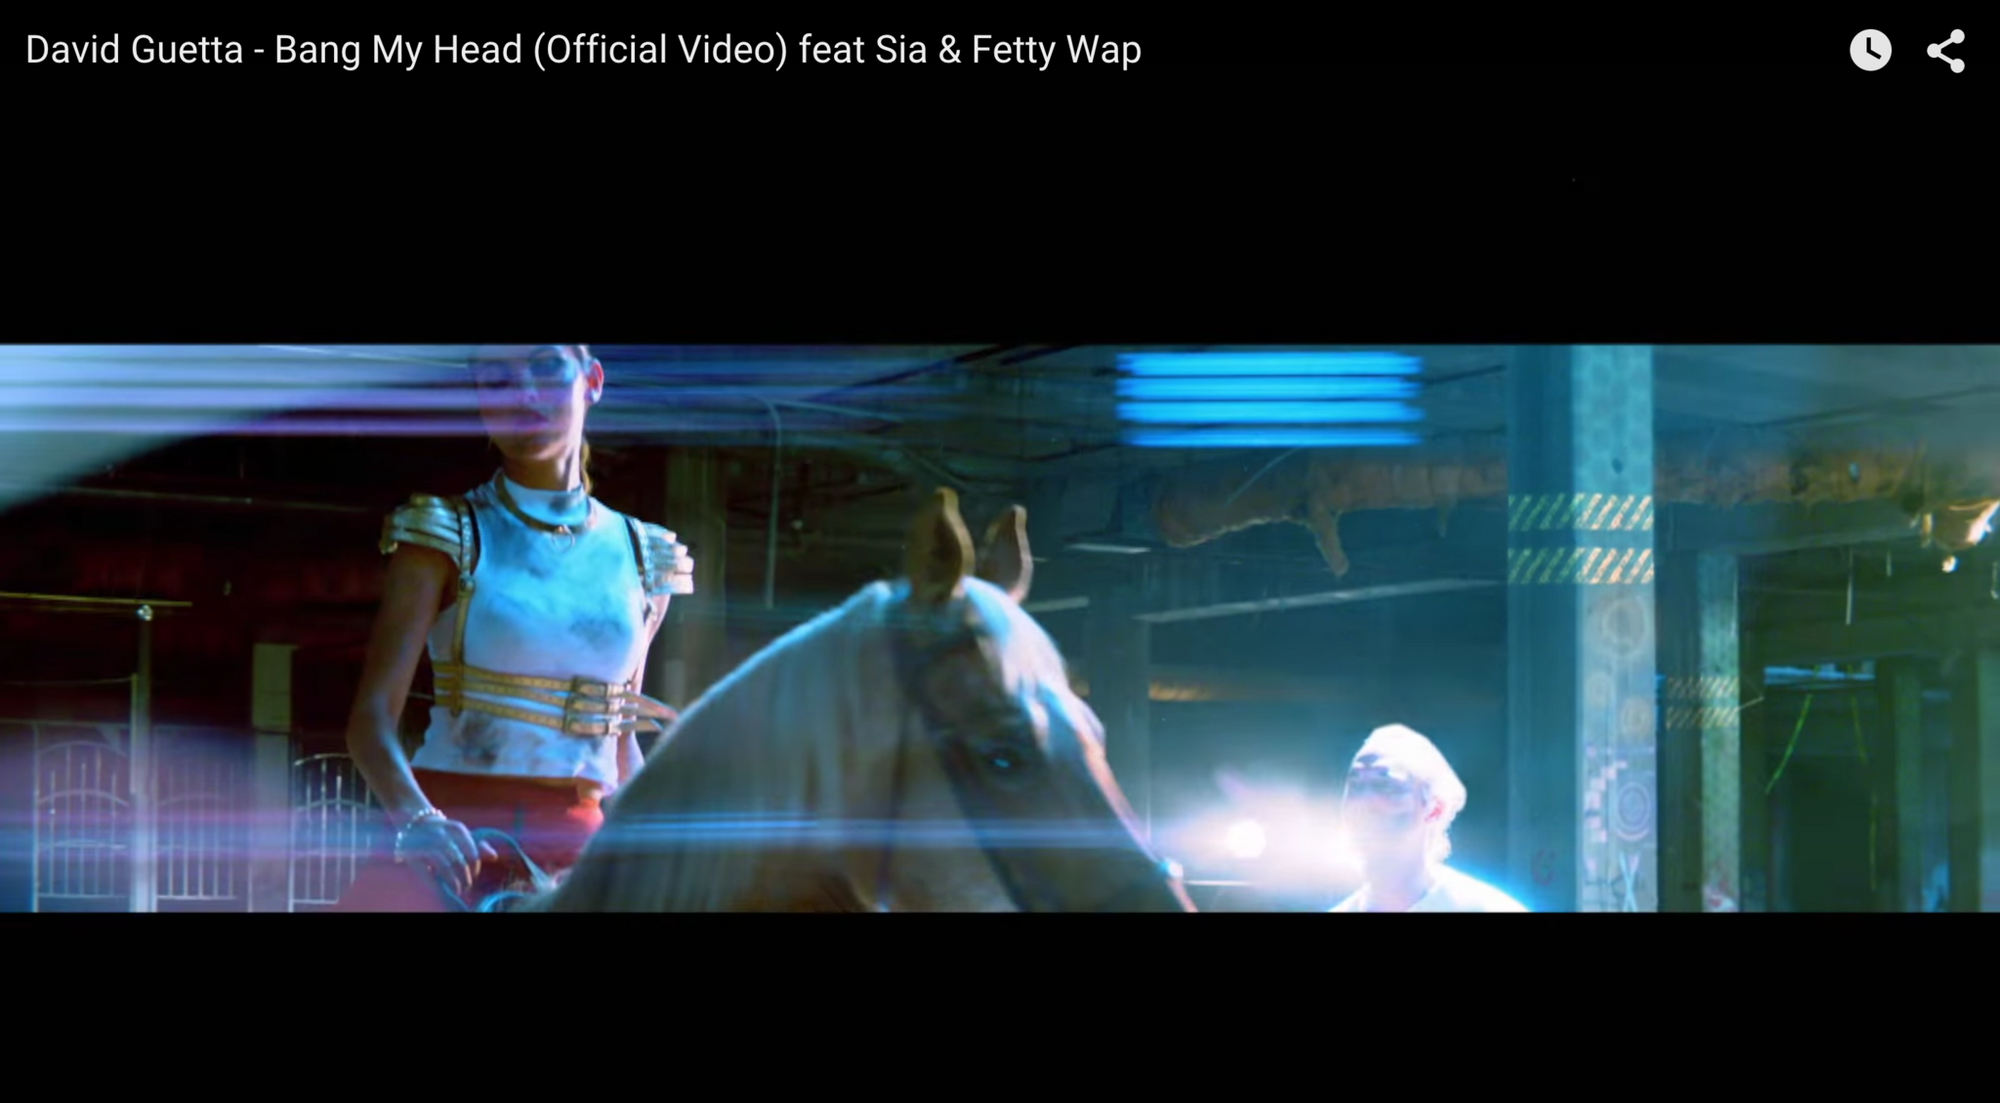 RITUAL in the new David Guetta - Bang My Head (Official Video) feat Sia & Fetty Wap